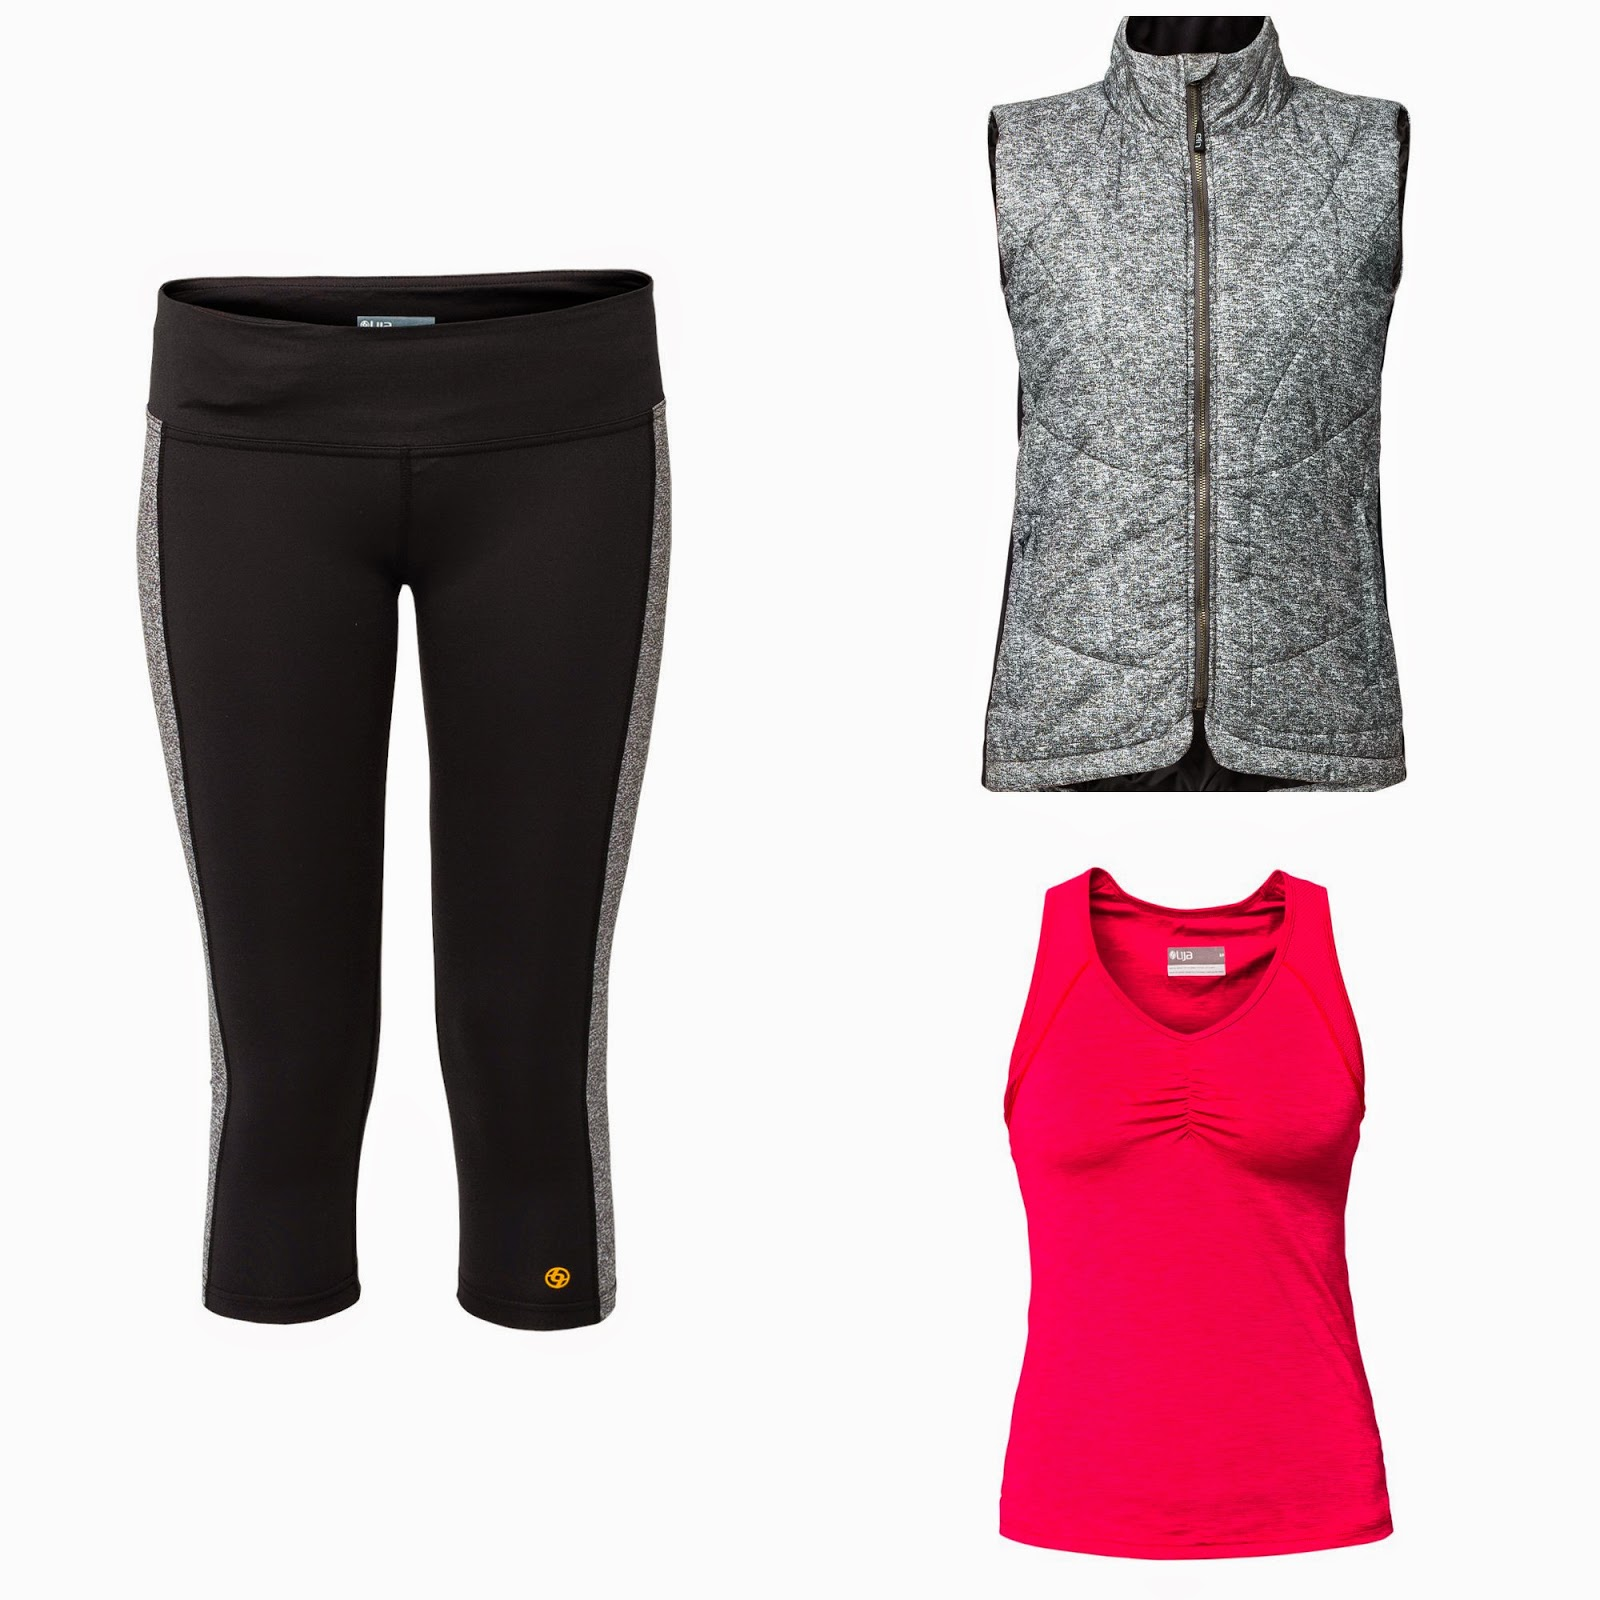 LIJA activewear UK